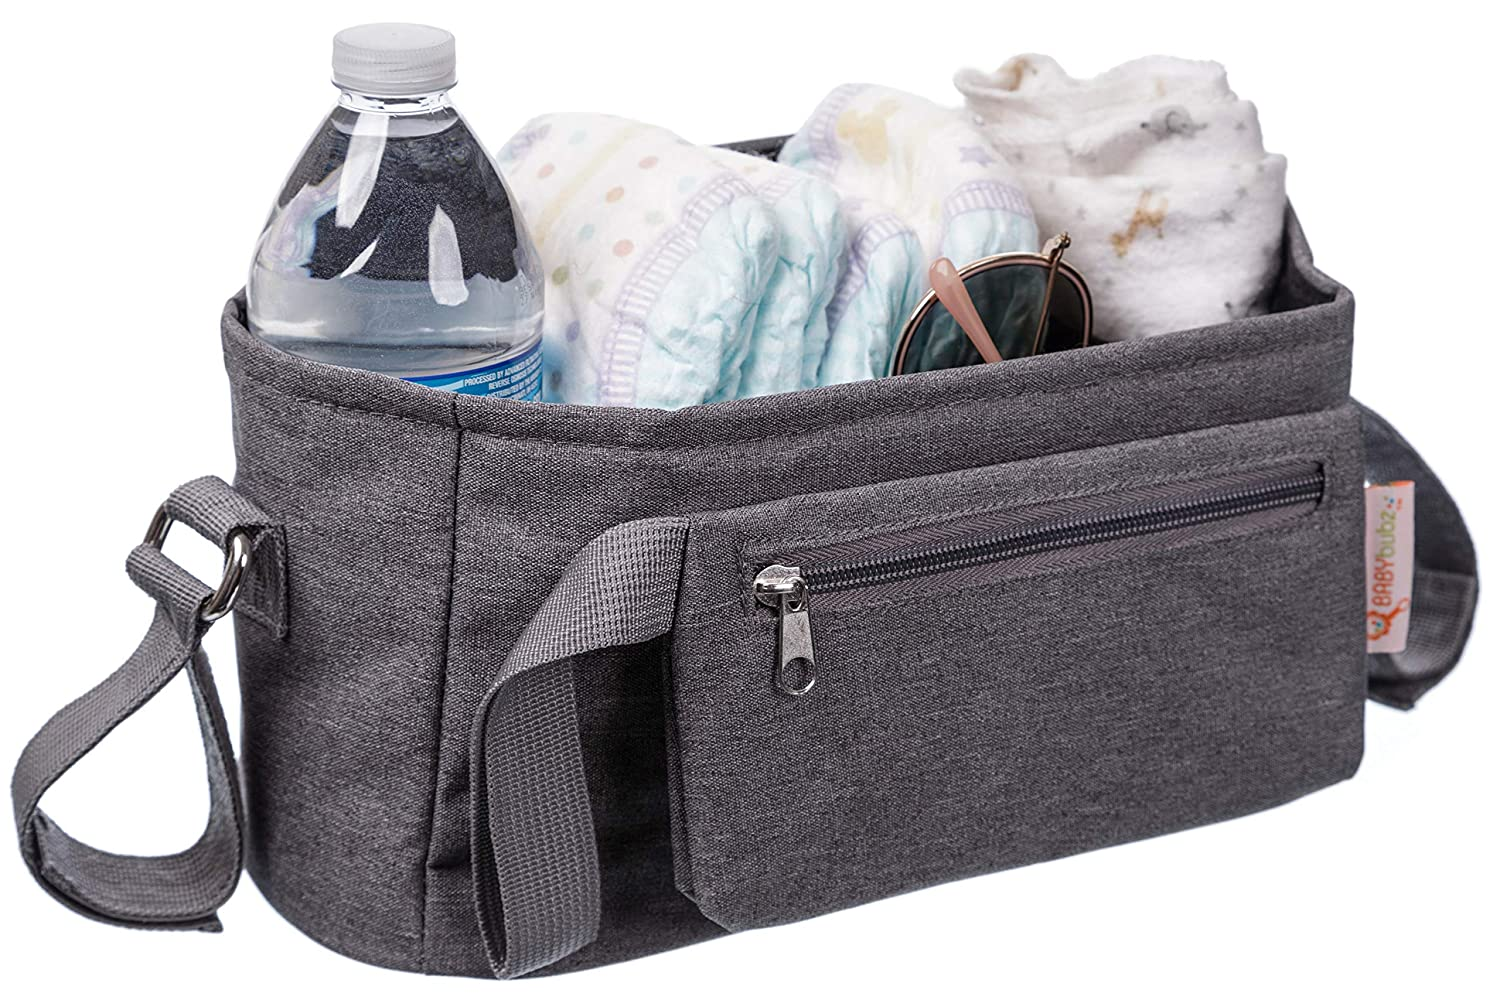 Baby Stroller Organizer for Busy Mom's - Lots of Storage - Durable Cup Holders - Universal Fit - Carry Your Phones, Keys, Diapers, Baby Toys, Snacks and More - Perfect Shower Gift BabyBubz